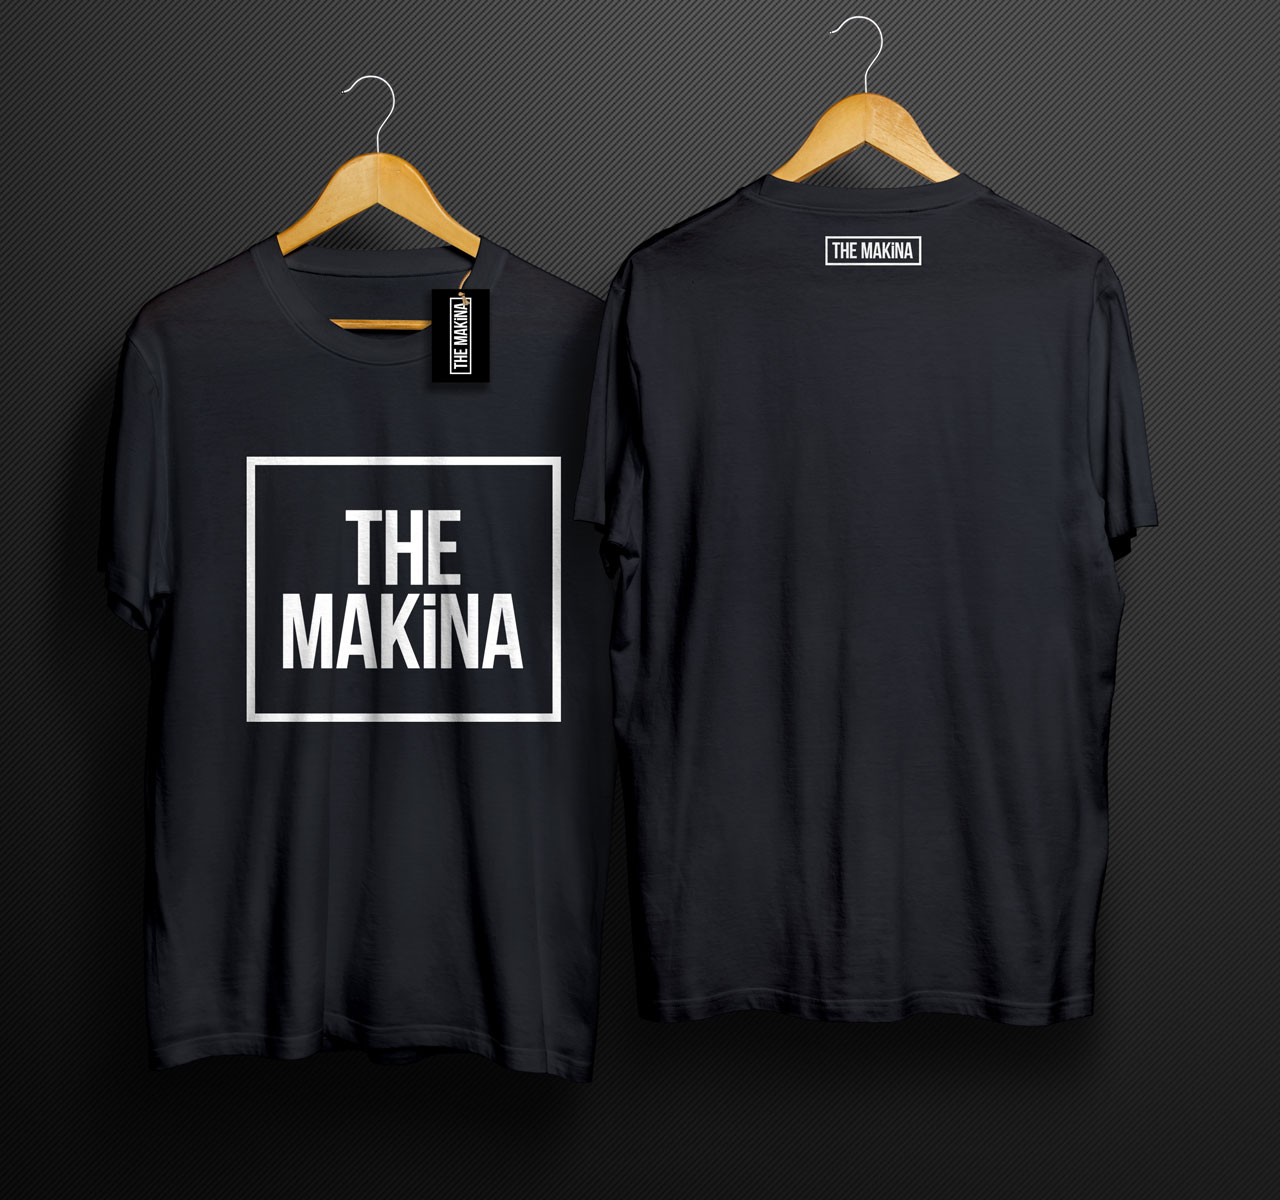 MMPower THE MAKINA Karekter TShirt Siyah